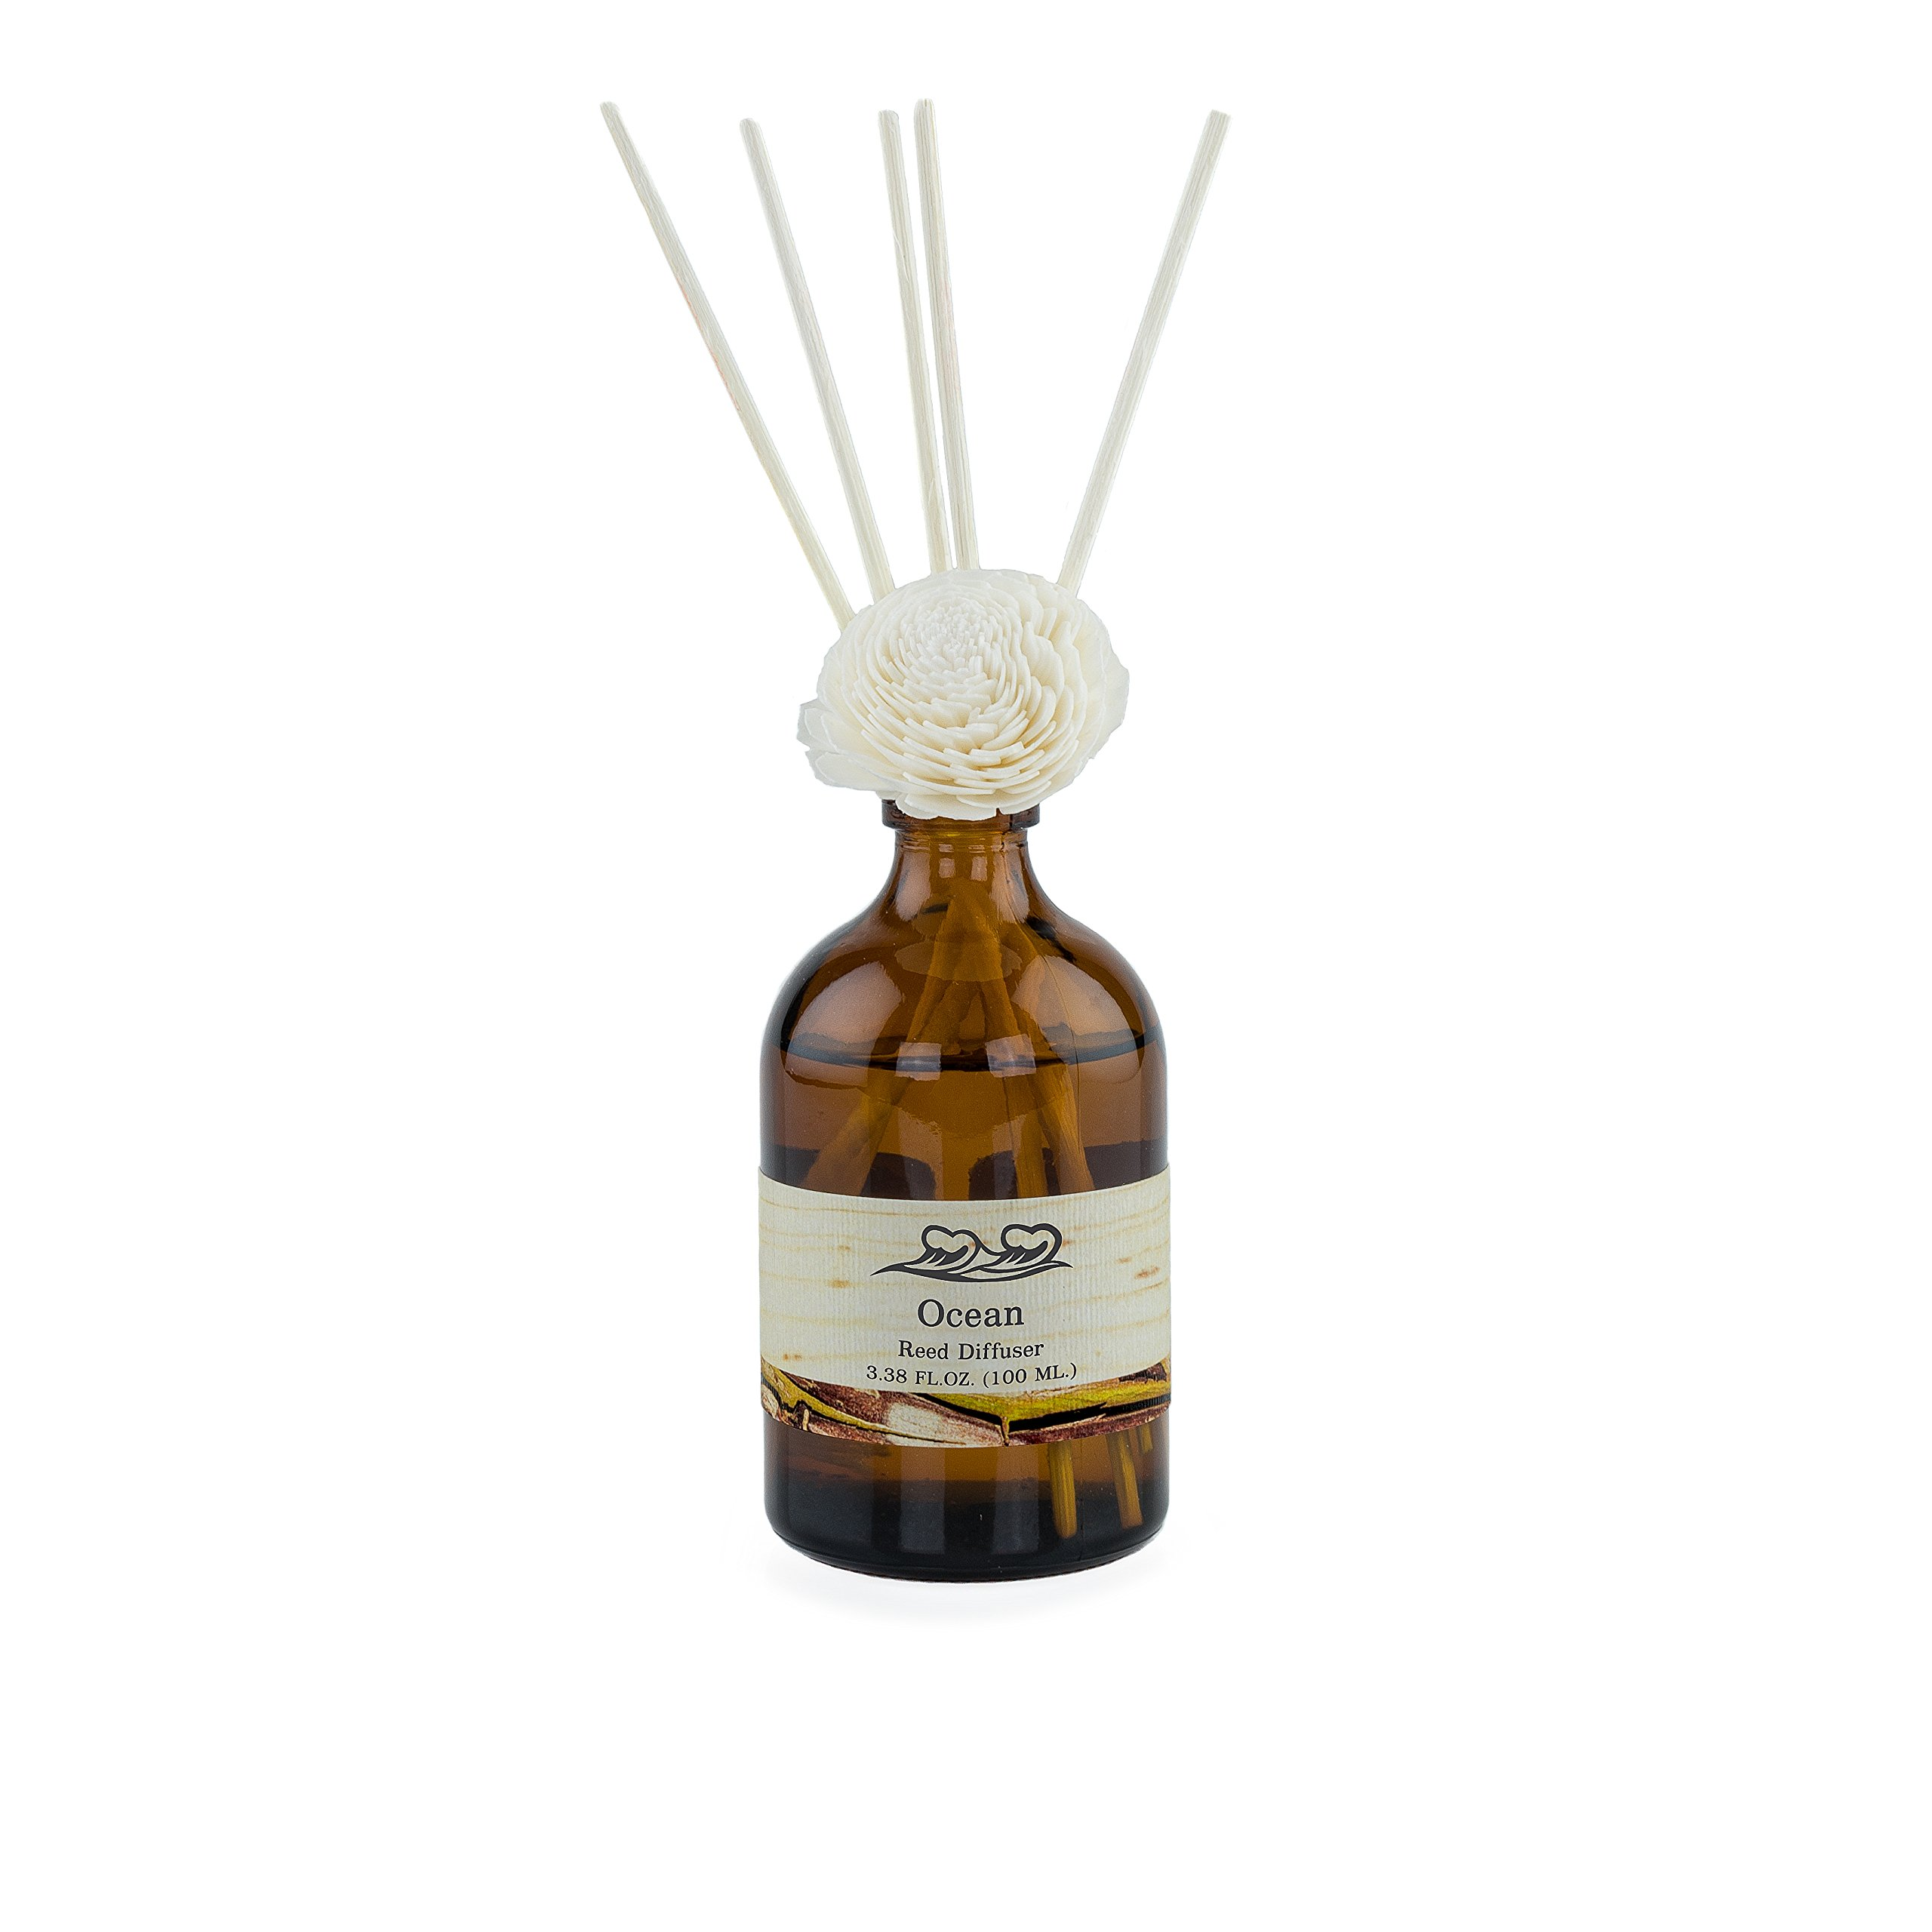 Life & Form Ocean Reed Diffuser Grand (3.38 fl.oz.) | Home Fragrance | by Life & Form (Image #2)